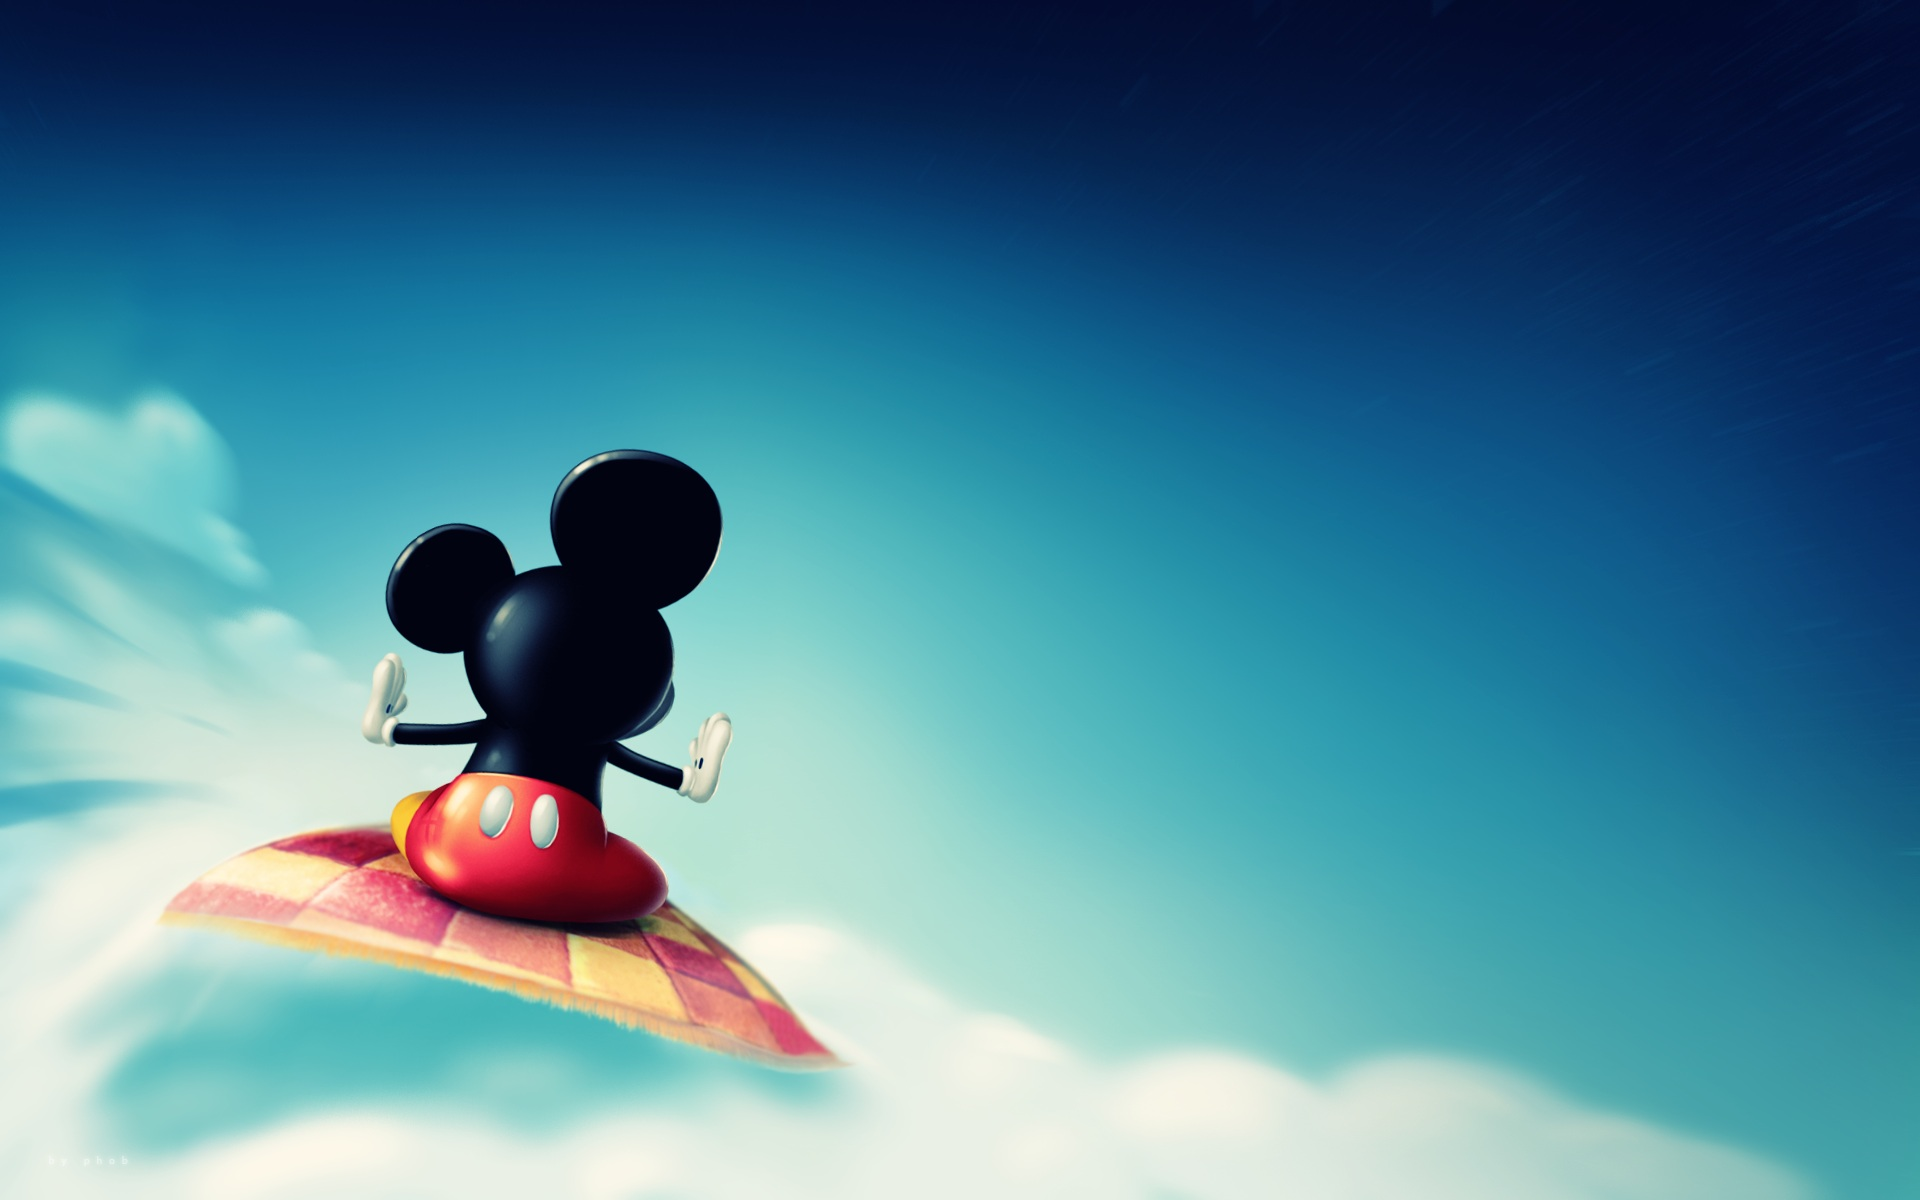 mickey mouse Wallpaper Background 15802 1920x1200